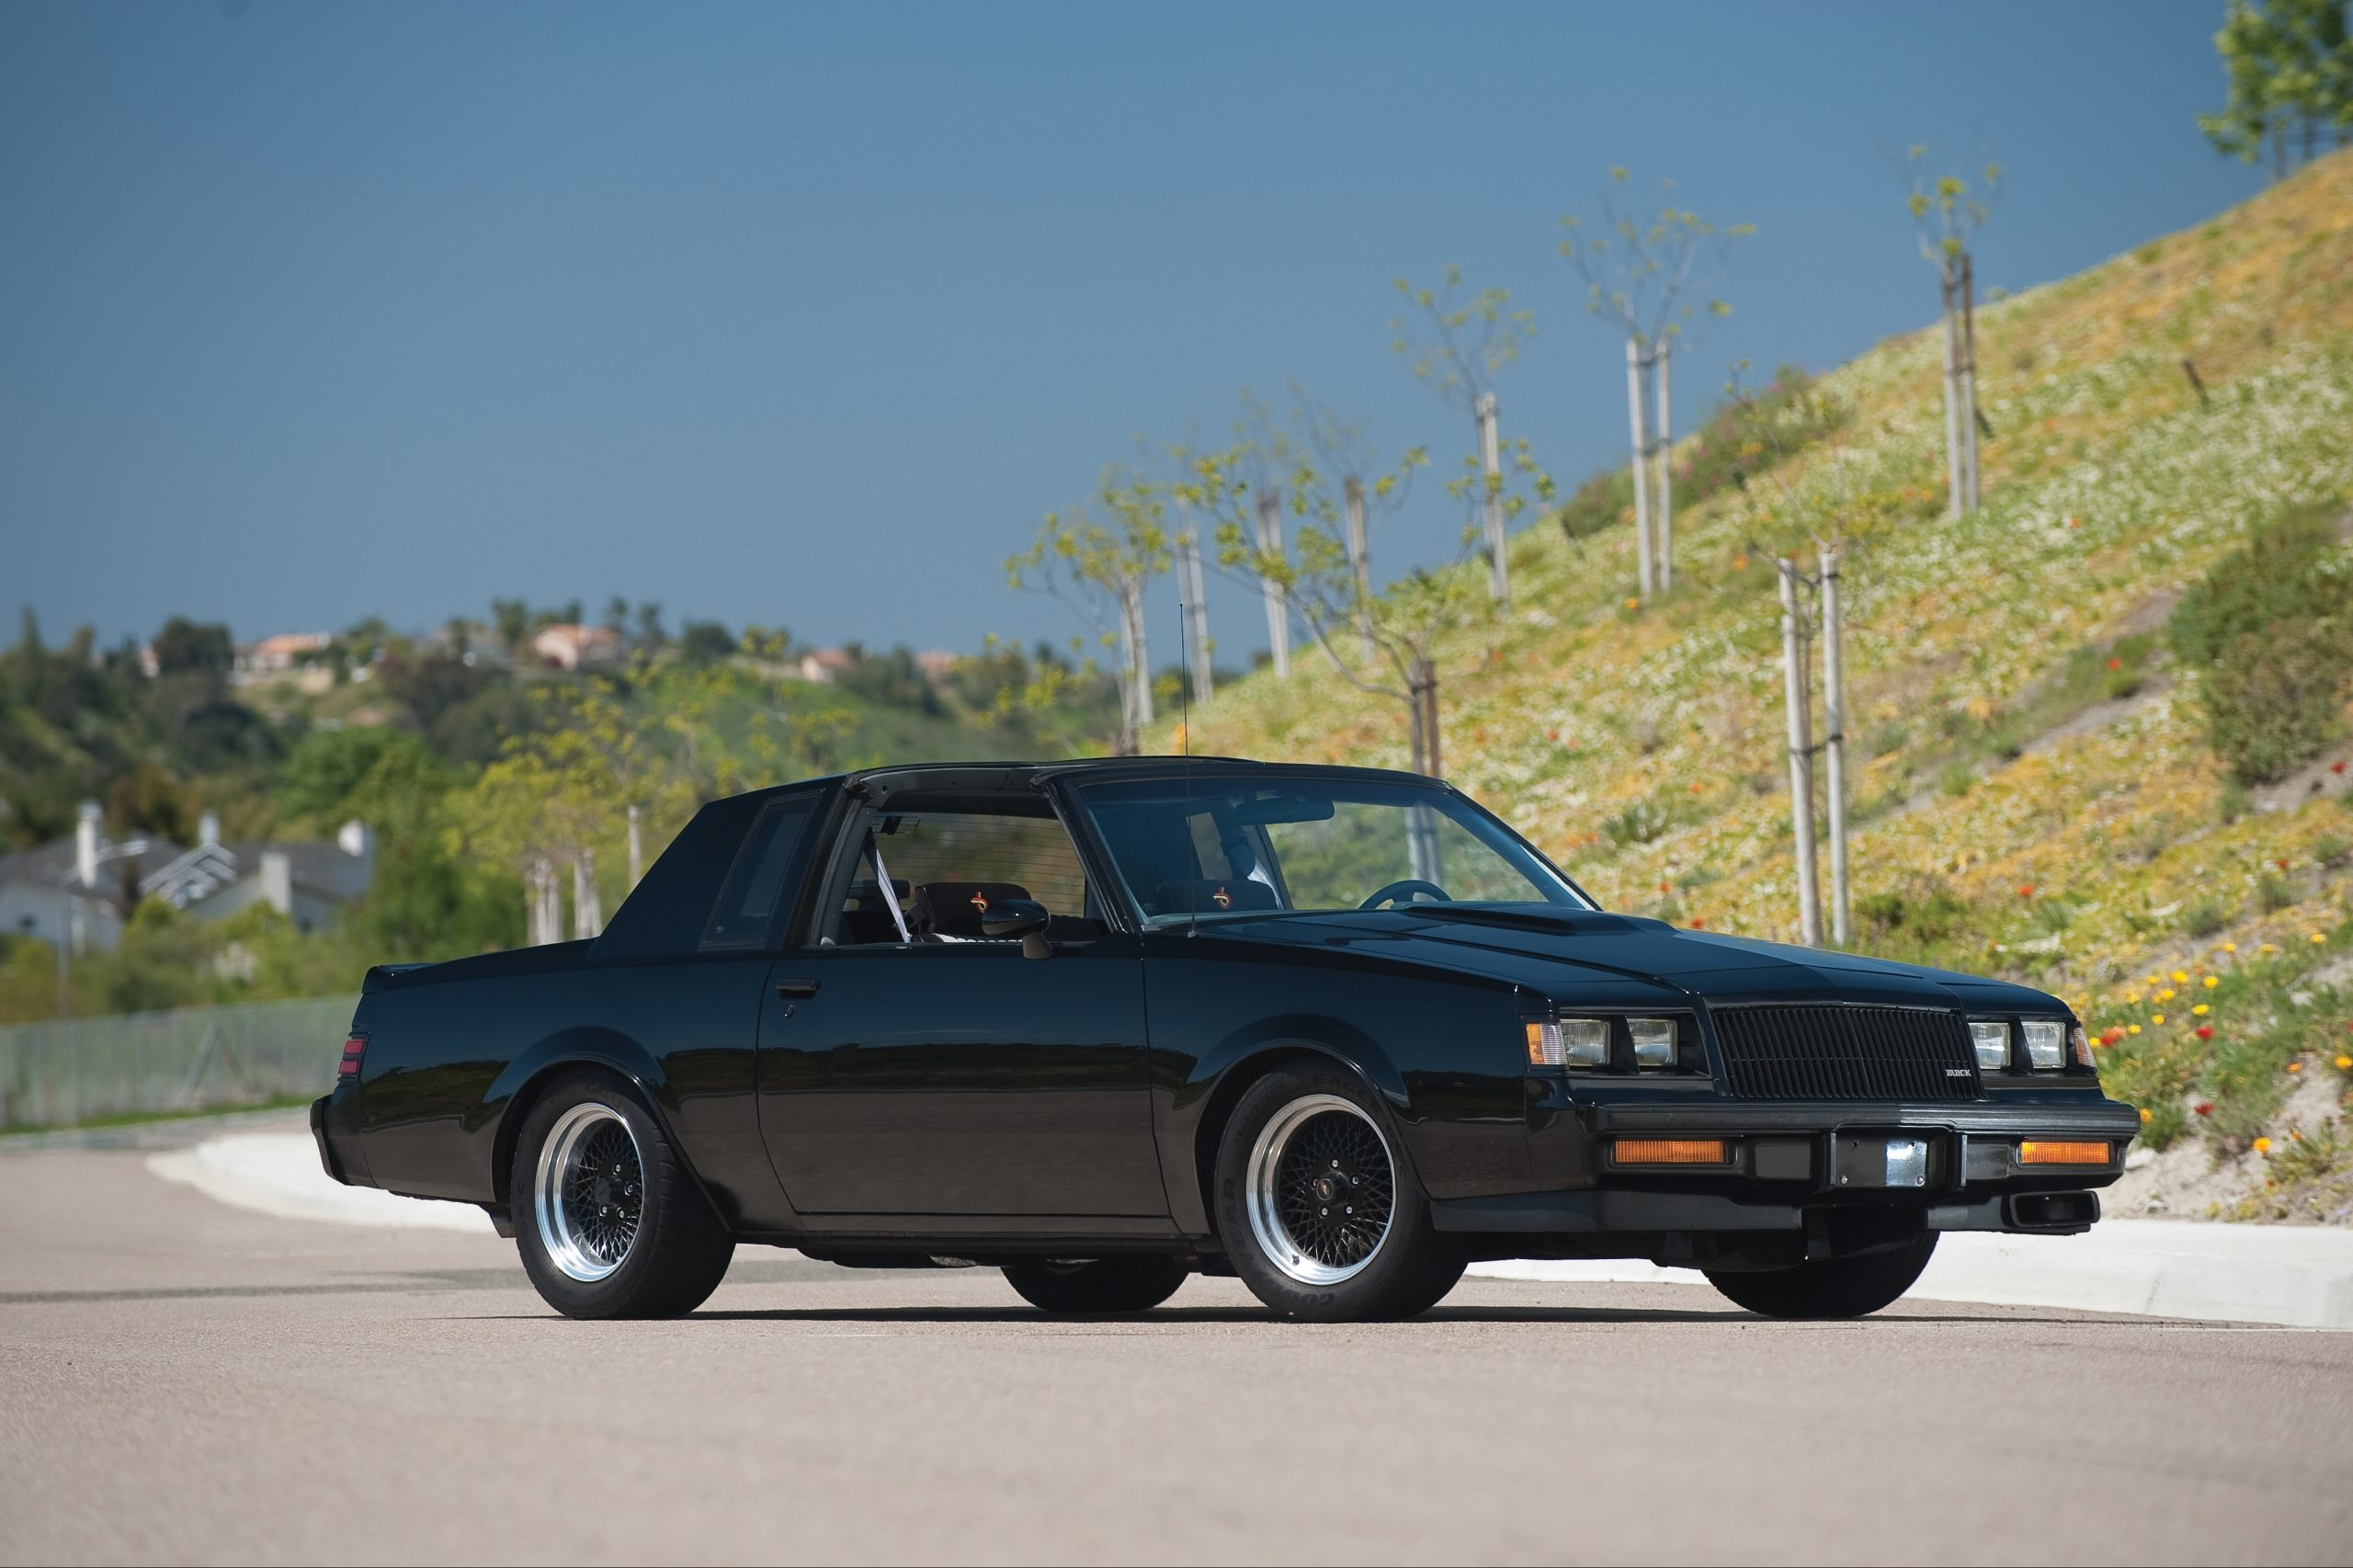 1982 - 1987 Buick Grand National | Top Speed New 2022 Buick Regal Gas Mileage, News, Grand National Specs